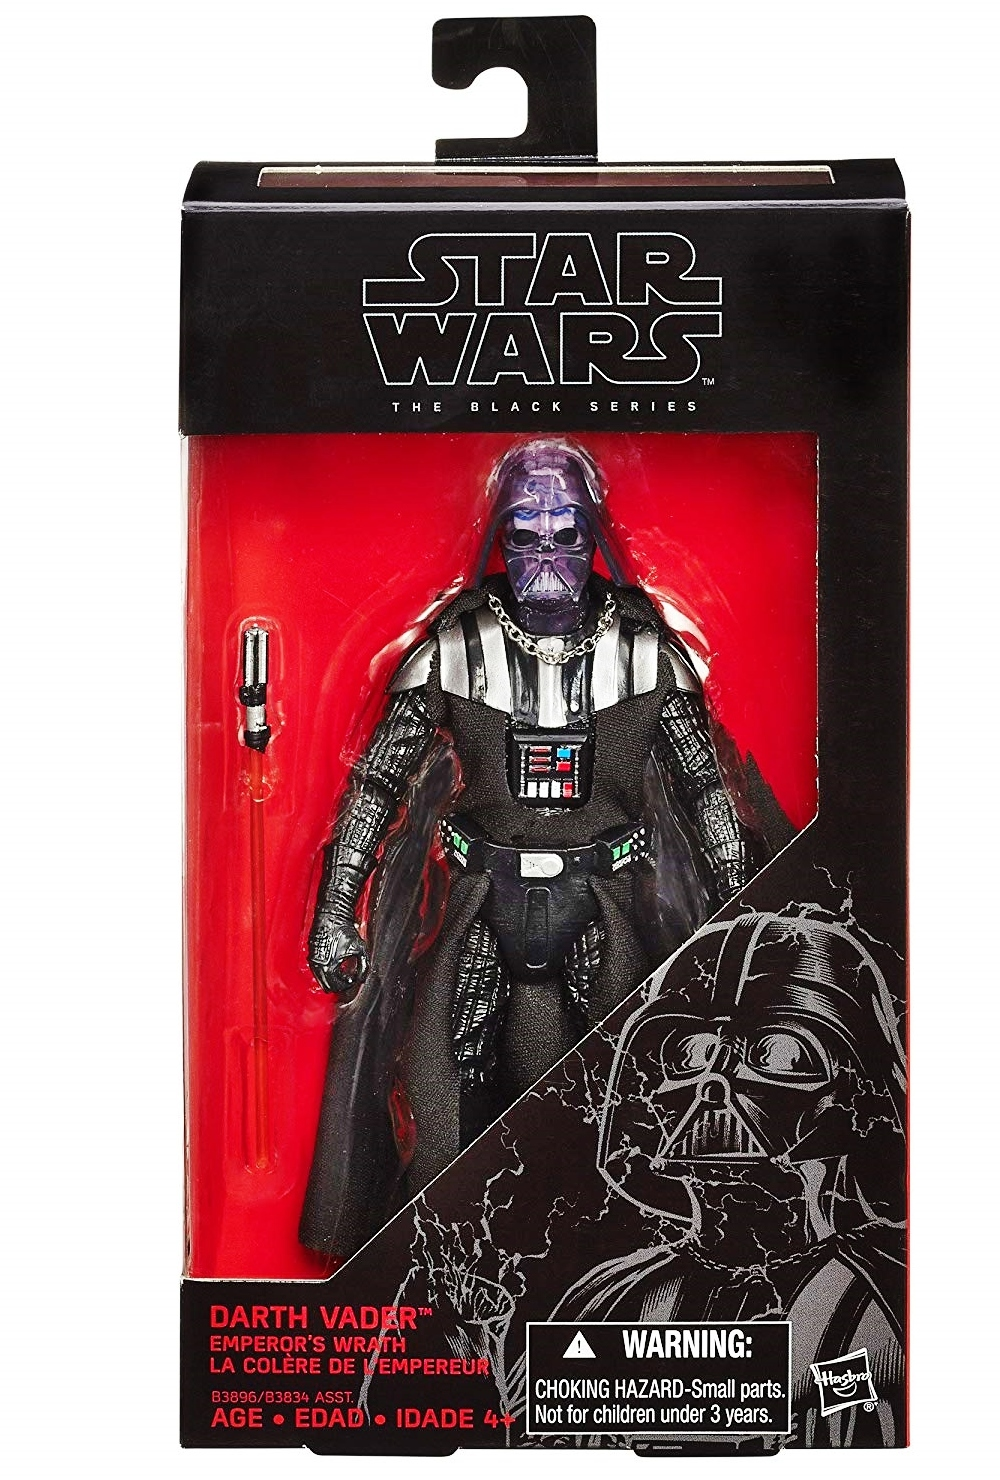 Primary image for Star Wars Darth Vader Emperor's Wrath The Black Series Exclusive 2015